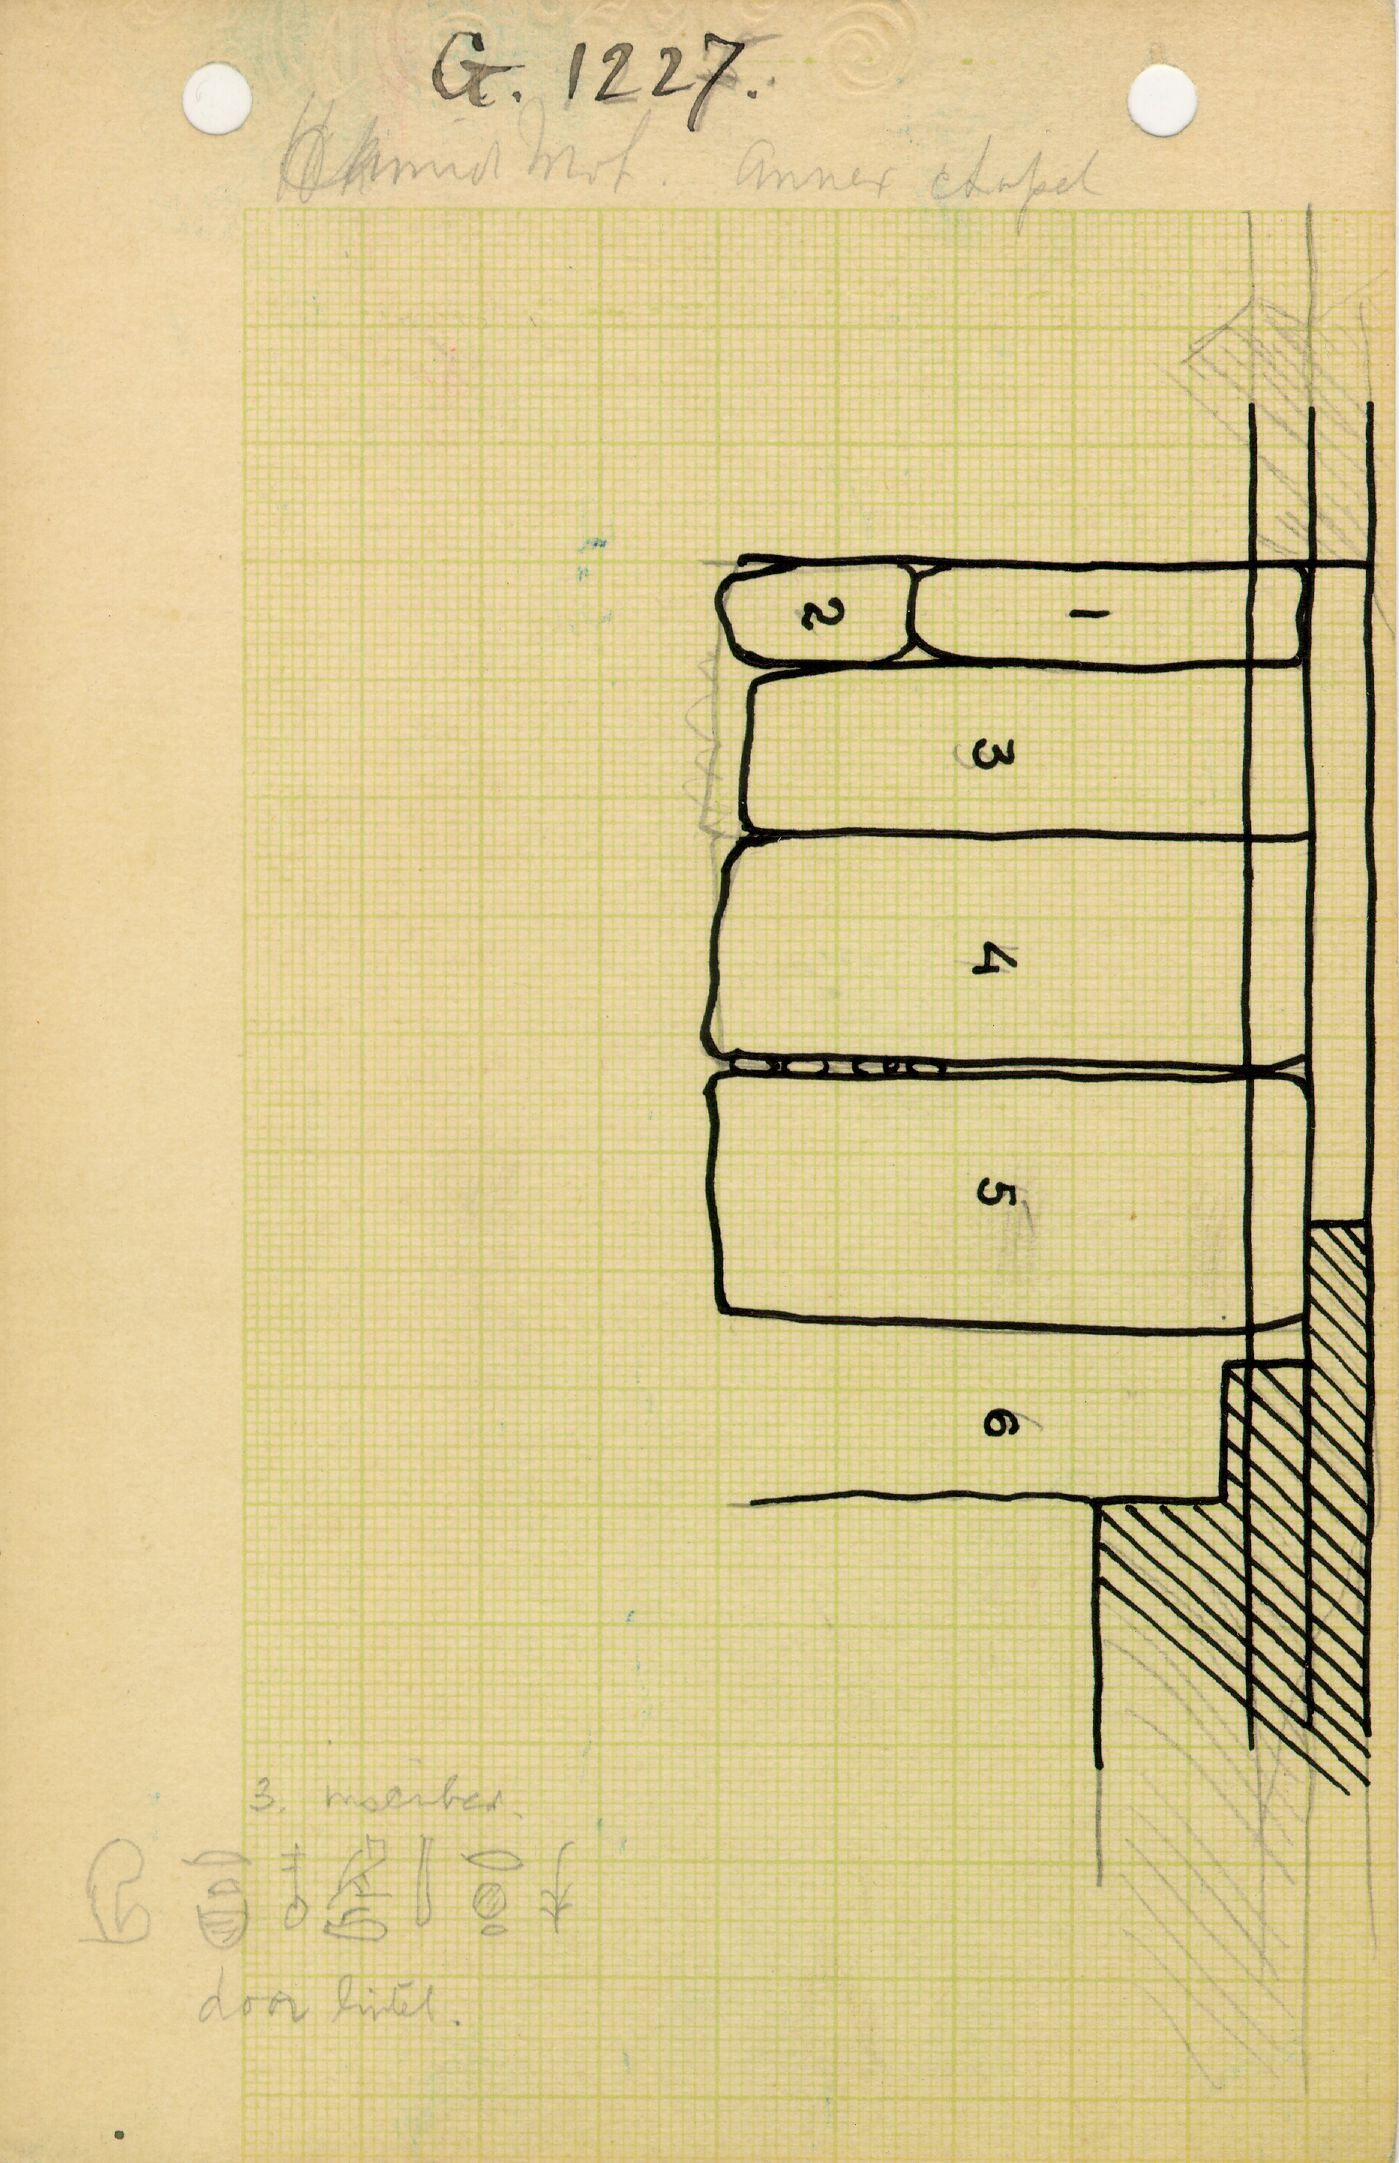 Maps and plans: G 1228 (= G 1227-Annex), Shaft X, roofing